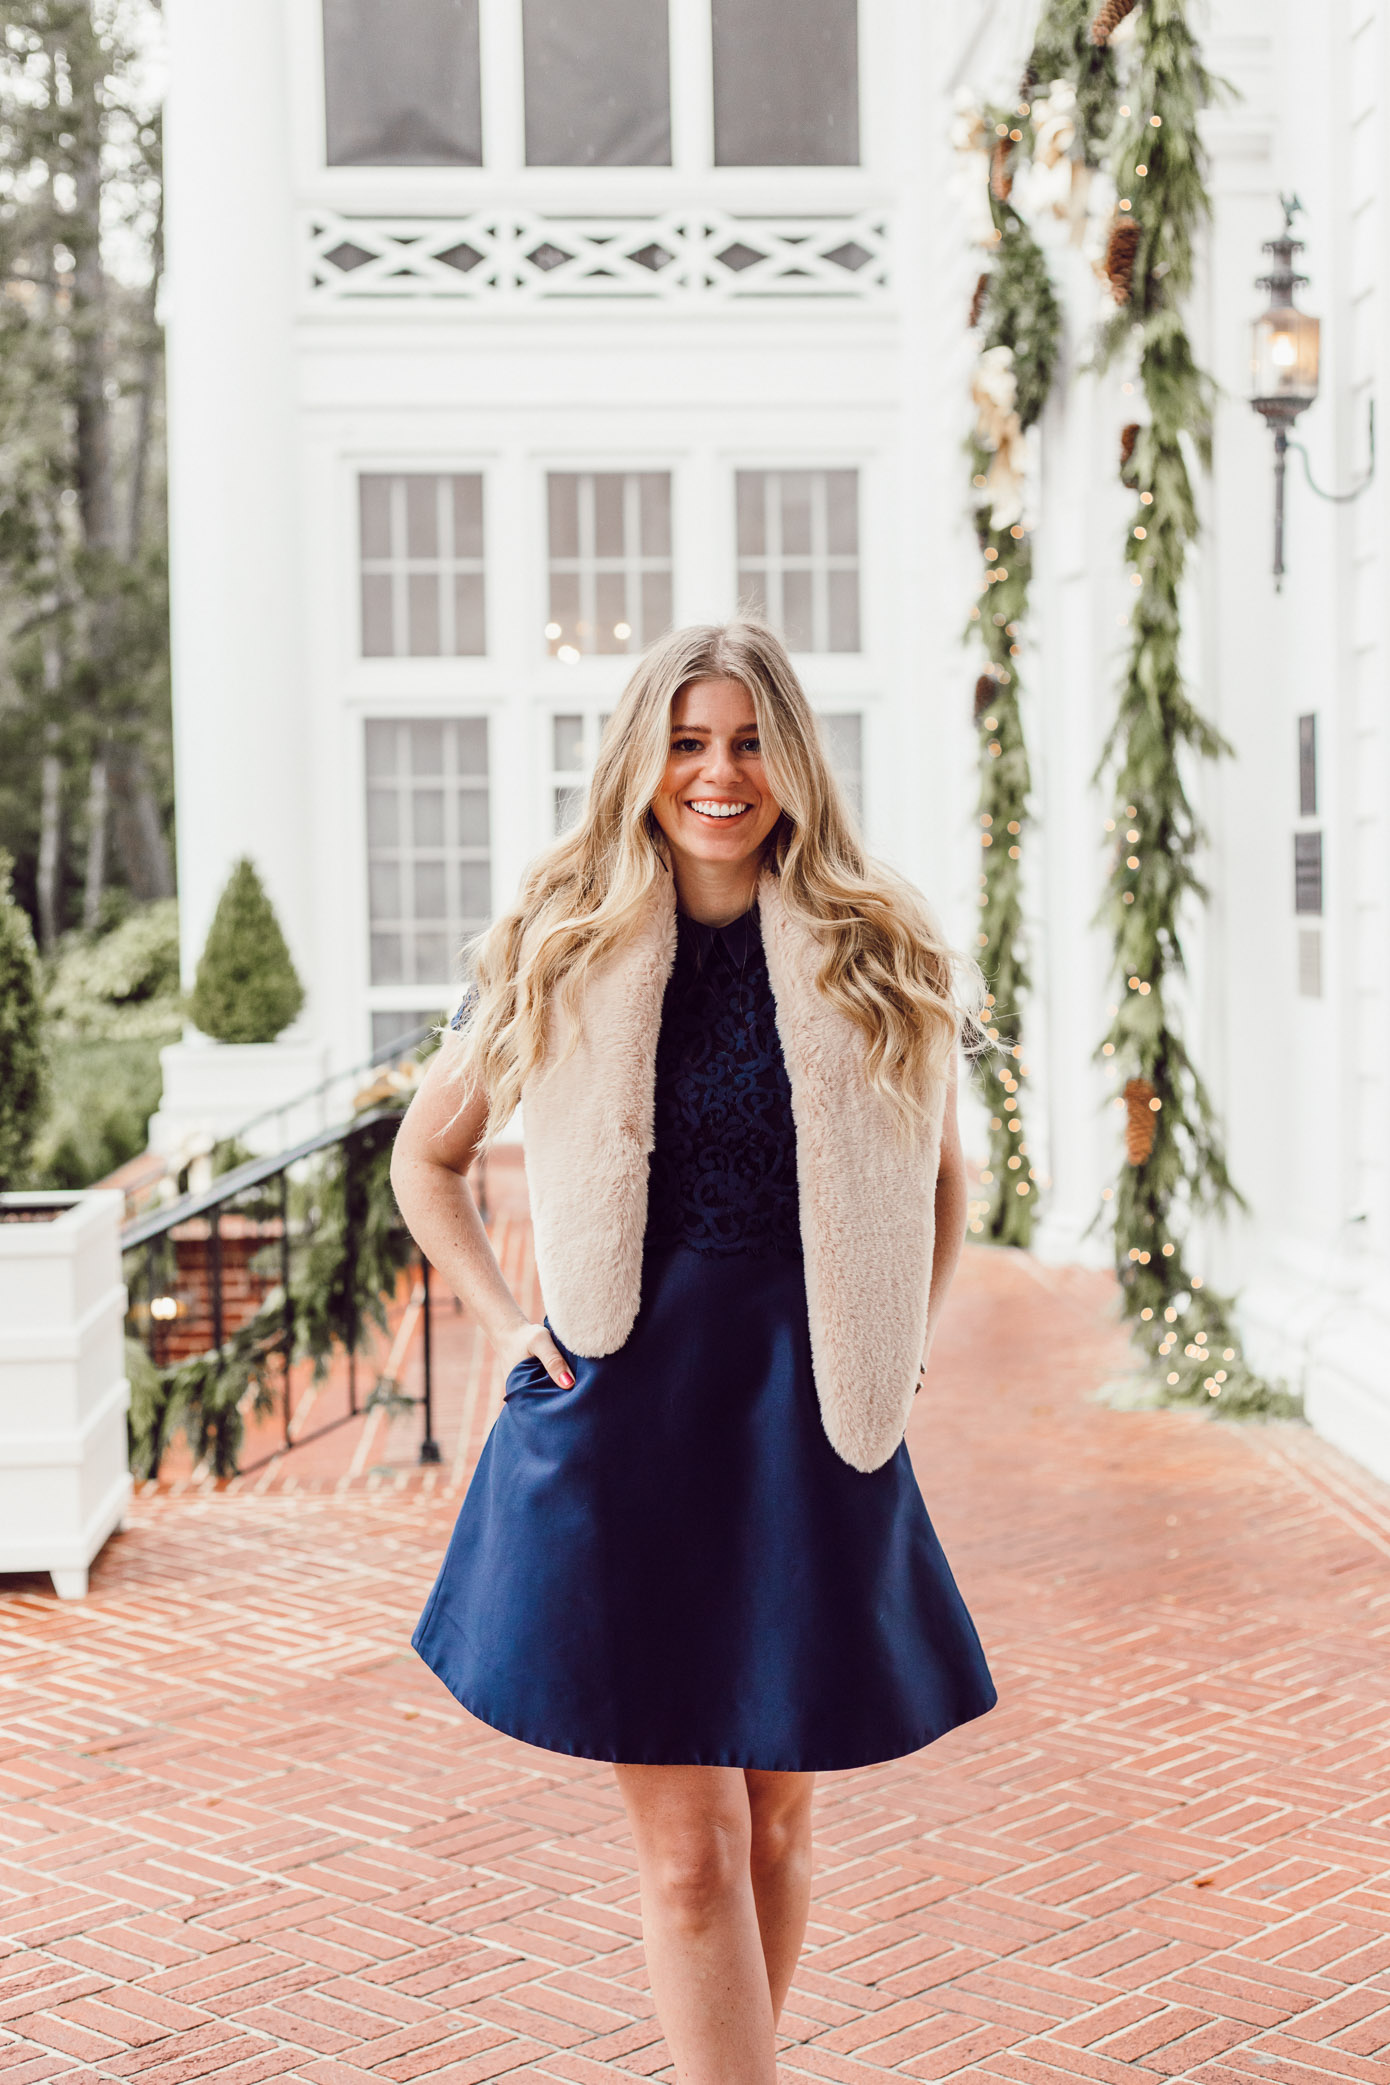 Finding the Perfect Holiday Party Dress with Rent the Runway on Louella Reese Life & Style Blog | Navy Lace Mini Dress, Christmas Party Dress, Faux Fur Stole